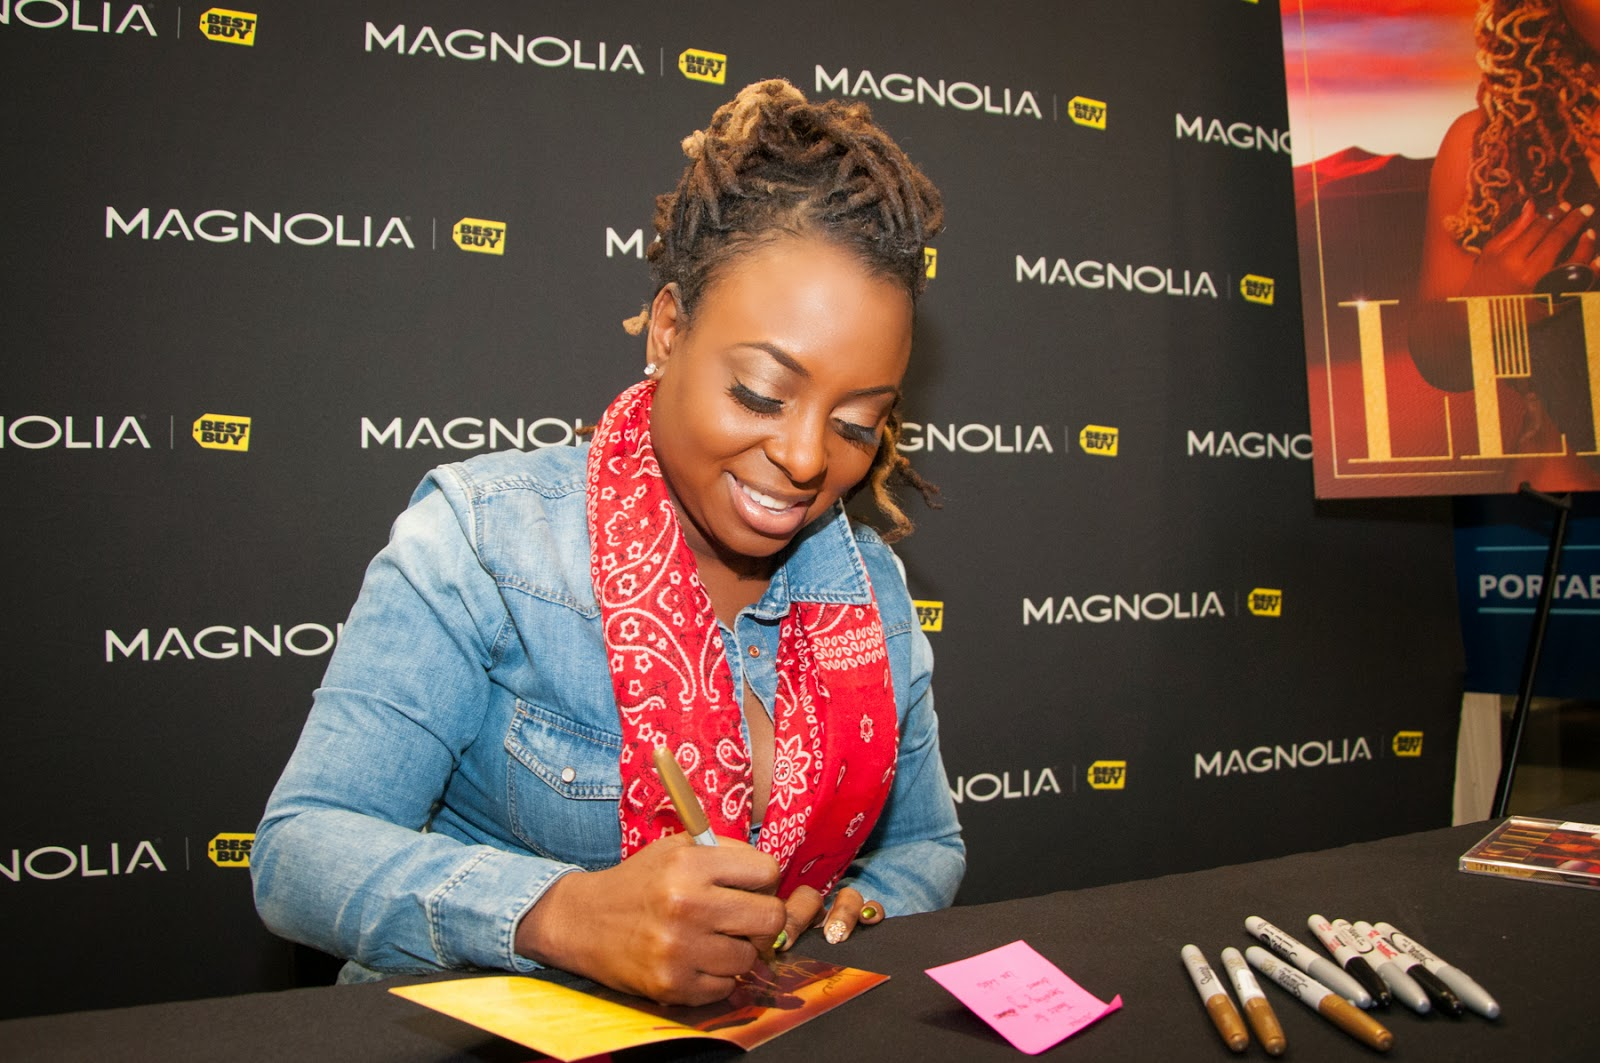 Ledisi signing her newest release The Truth, Autograph signing, Magnolia Theater Best Buy